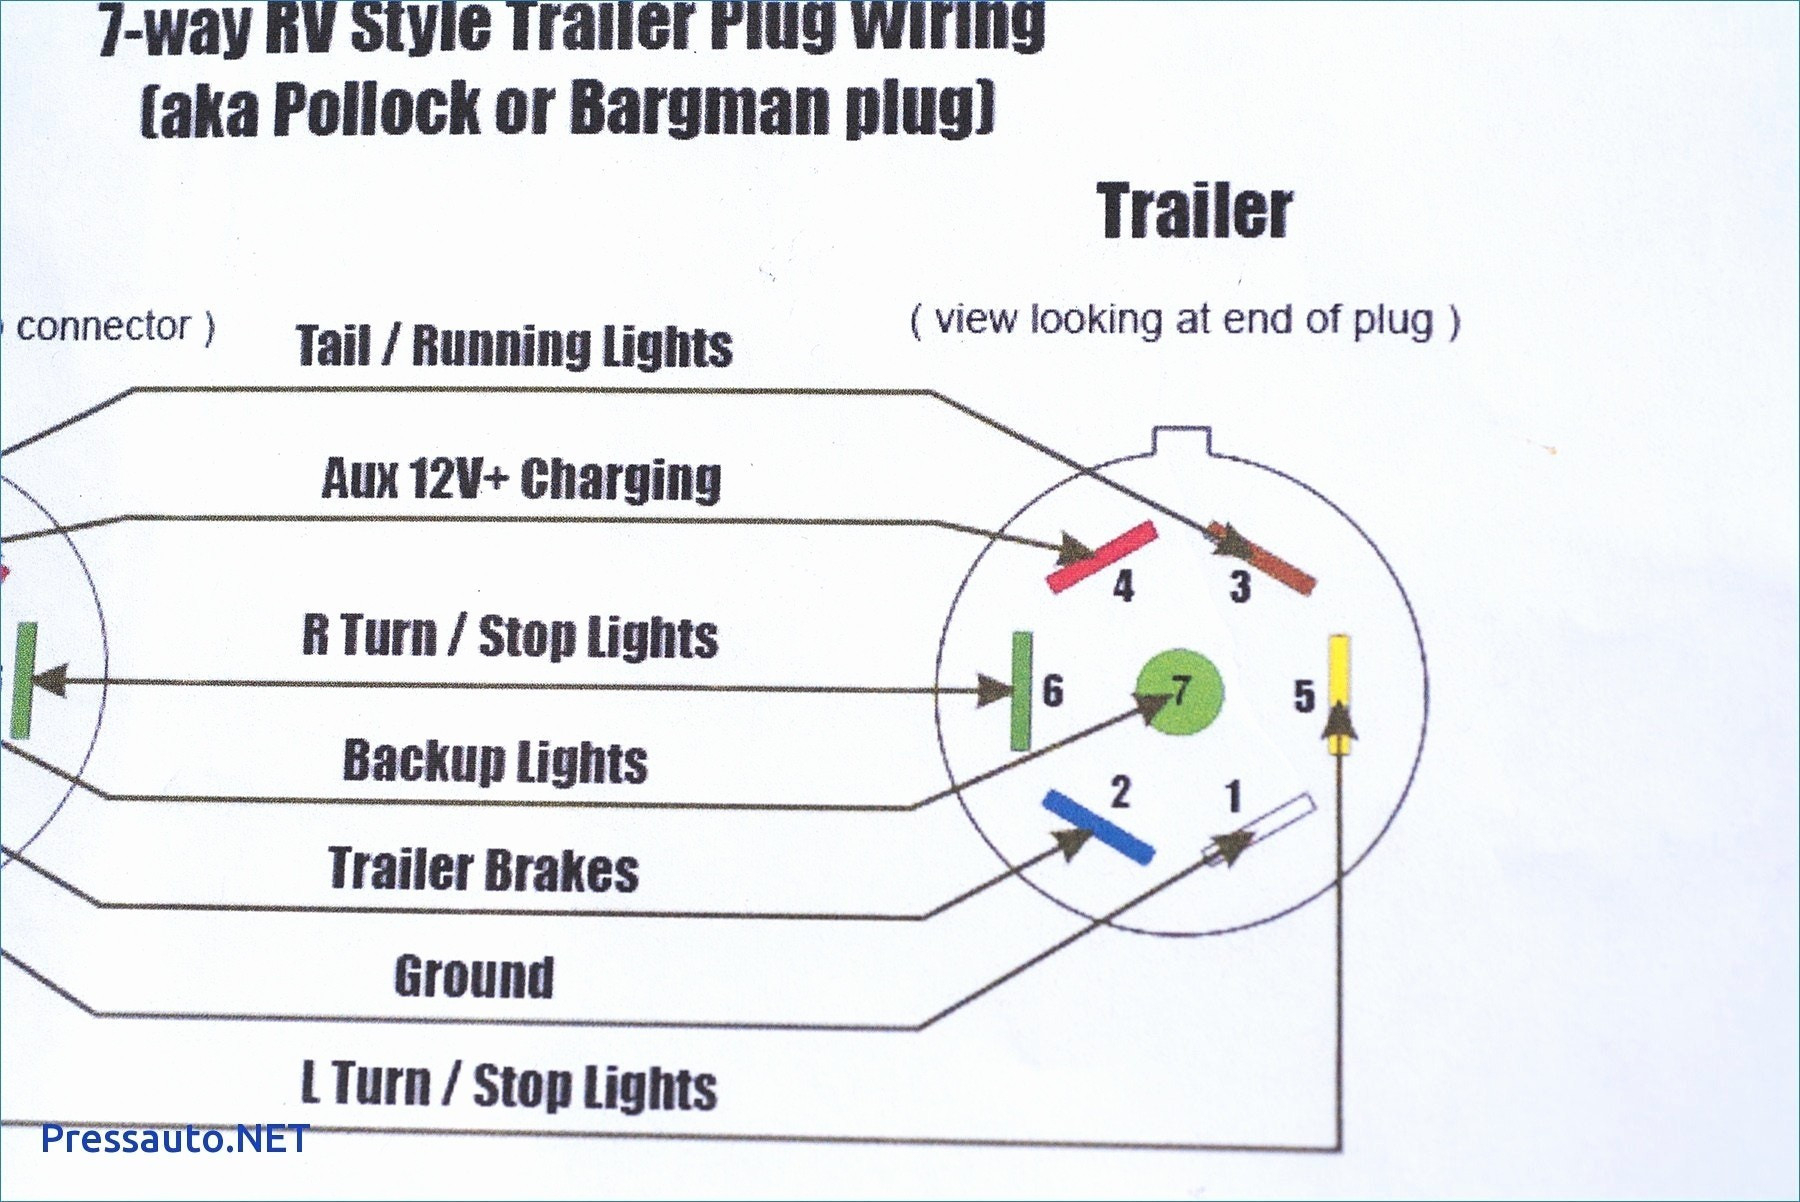 Wiring Diagram For Trailer Lights 7 Way Recent Wiring Diagram For - Trailer Wiring Diagram Led Lights